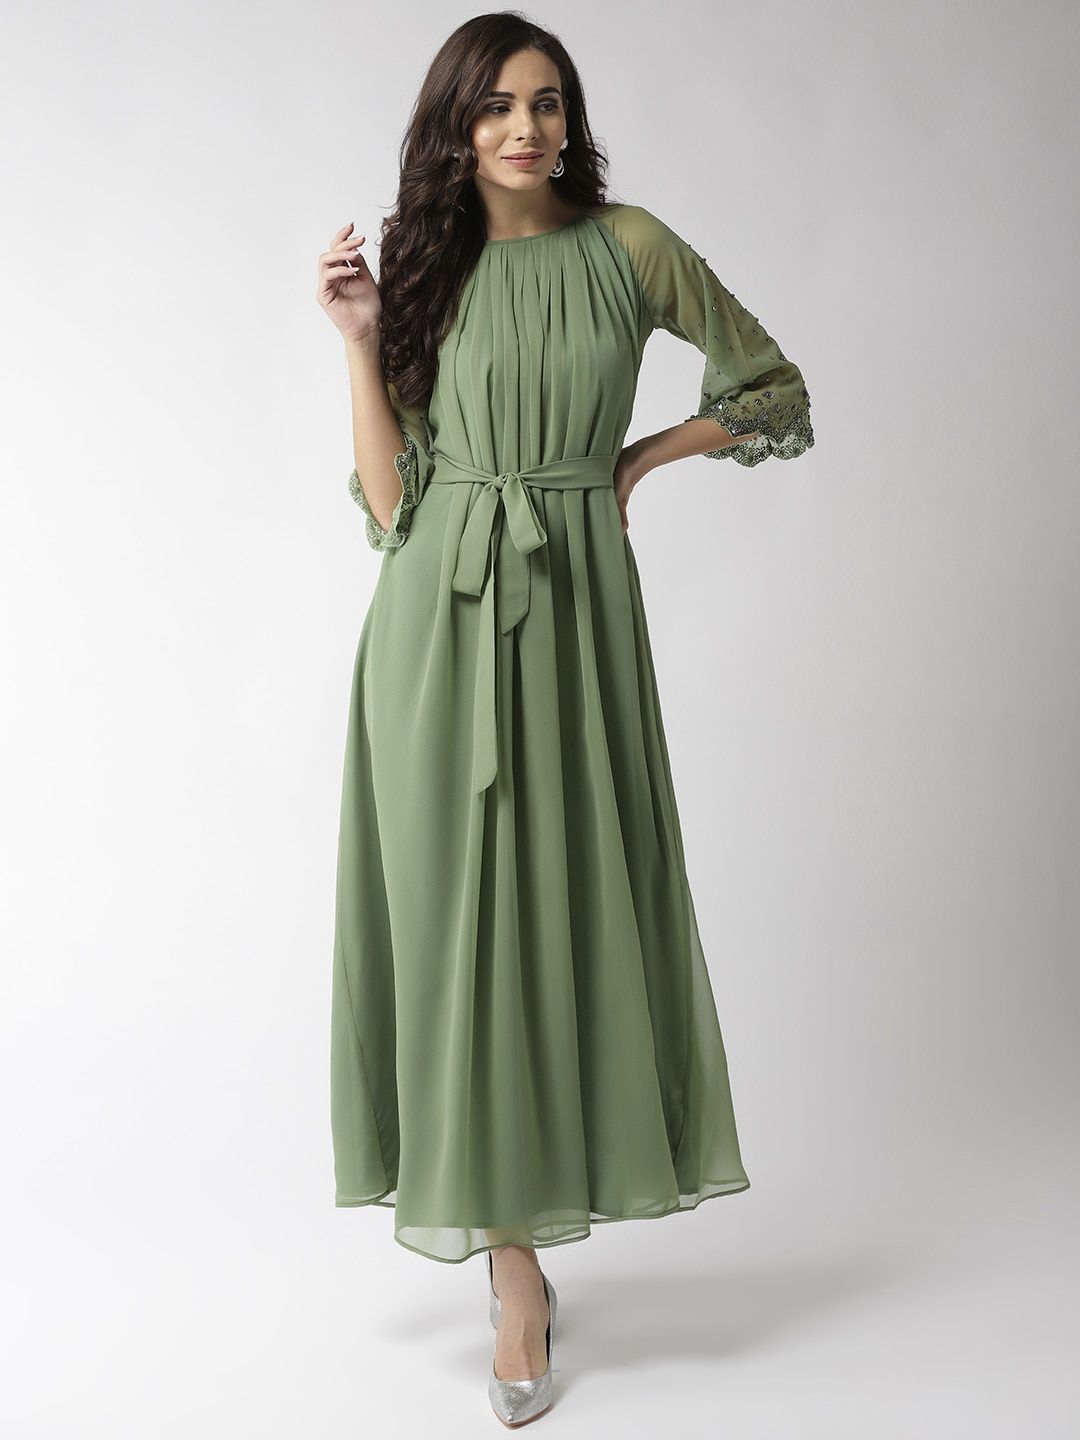 5991c4103 Long Dresses - Buy Maxi Dresses for Women Online in India - Upto 70% OFF